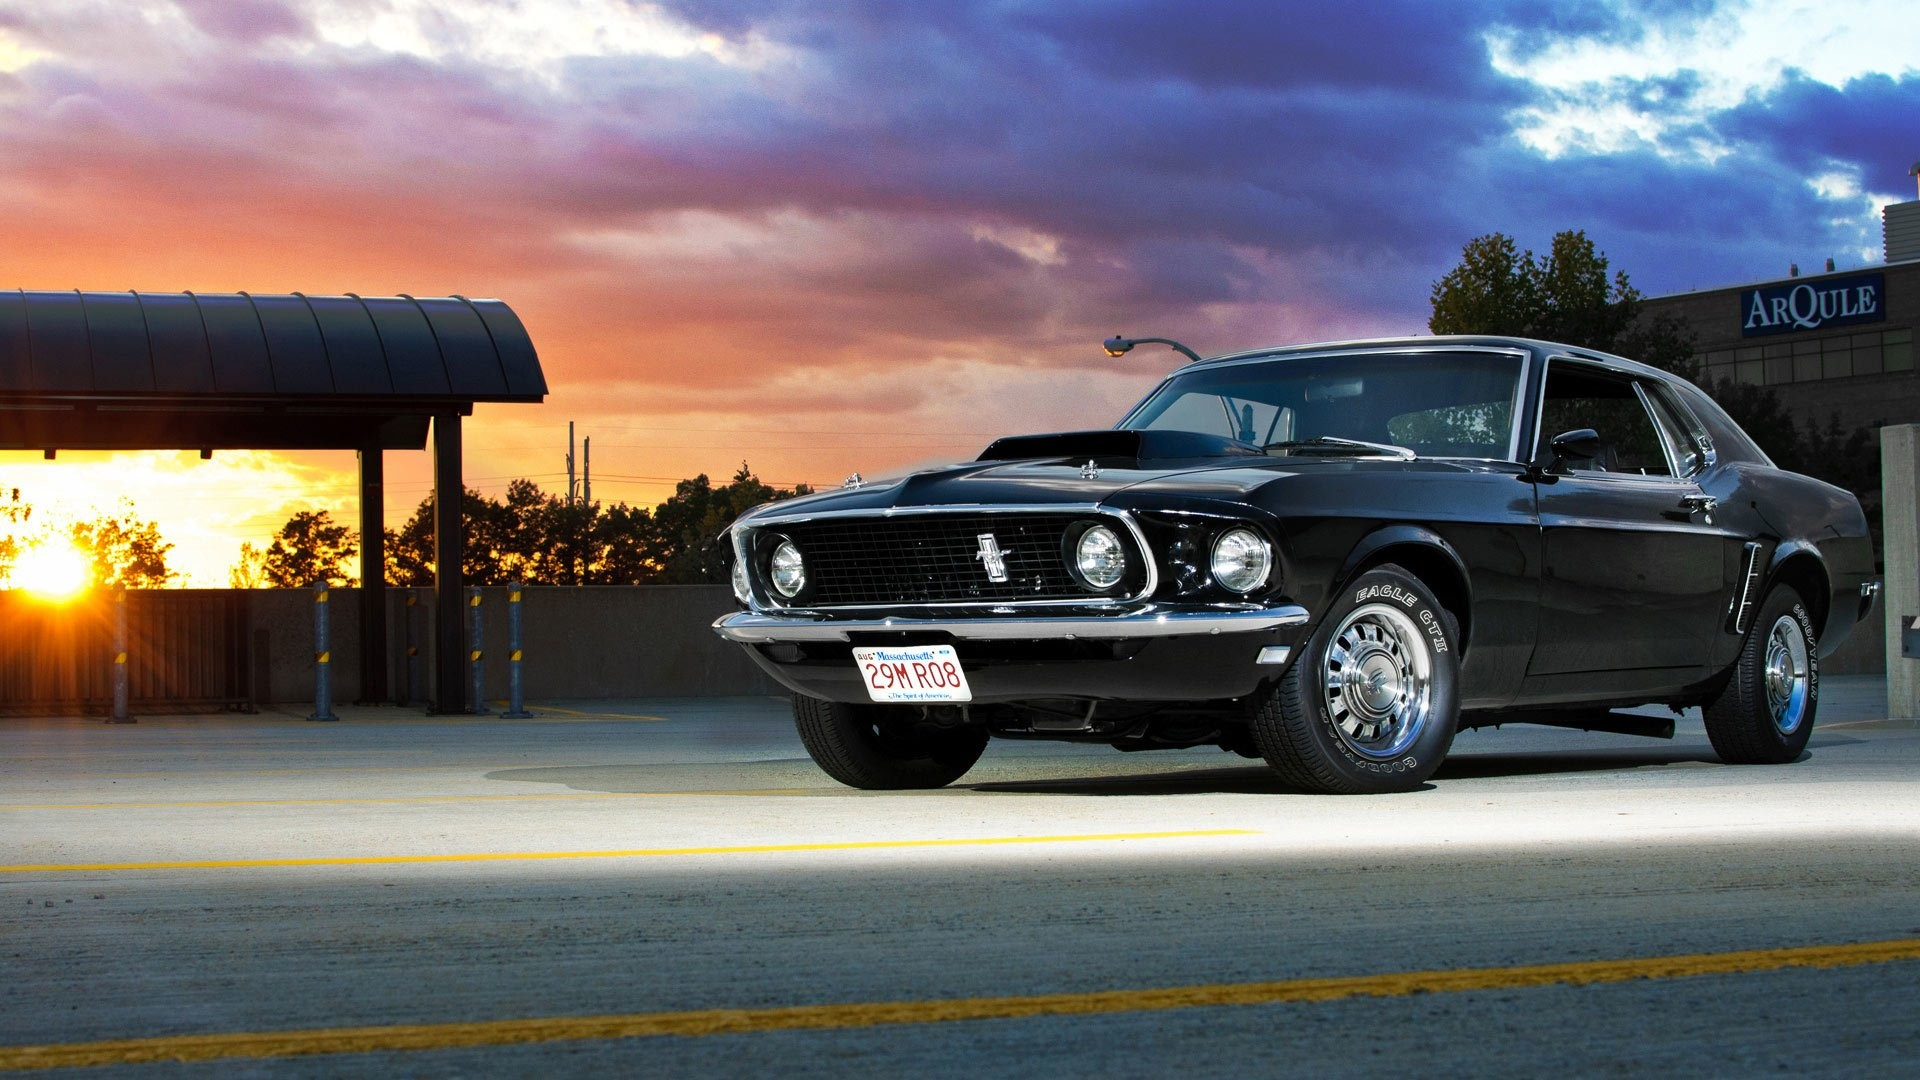 1920x1080 Widescreen Cool Sports Car Desktop Background Mustang For Ipad .